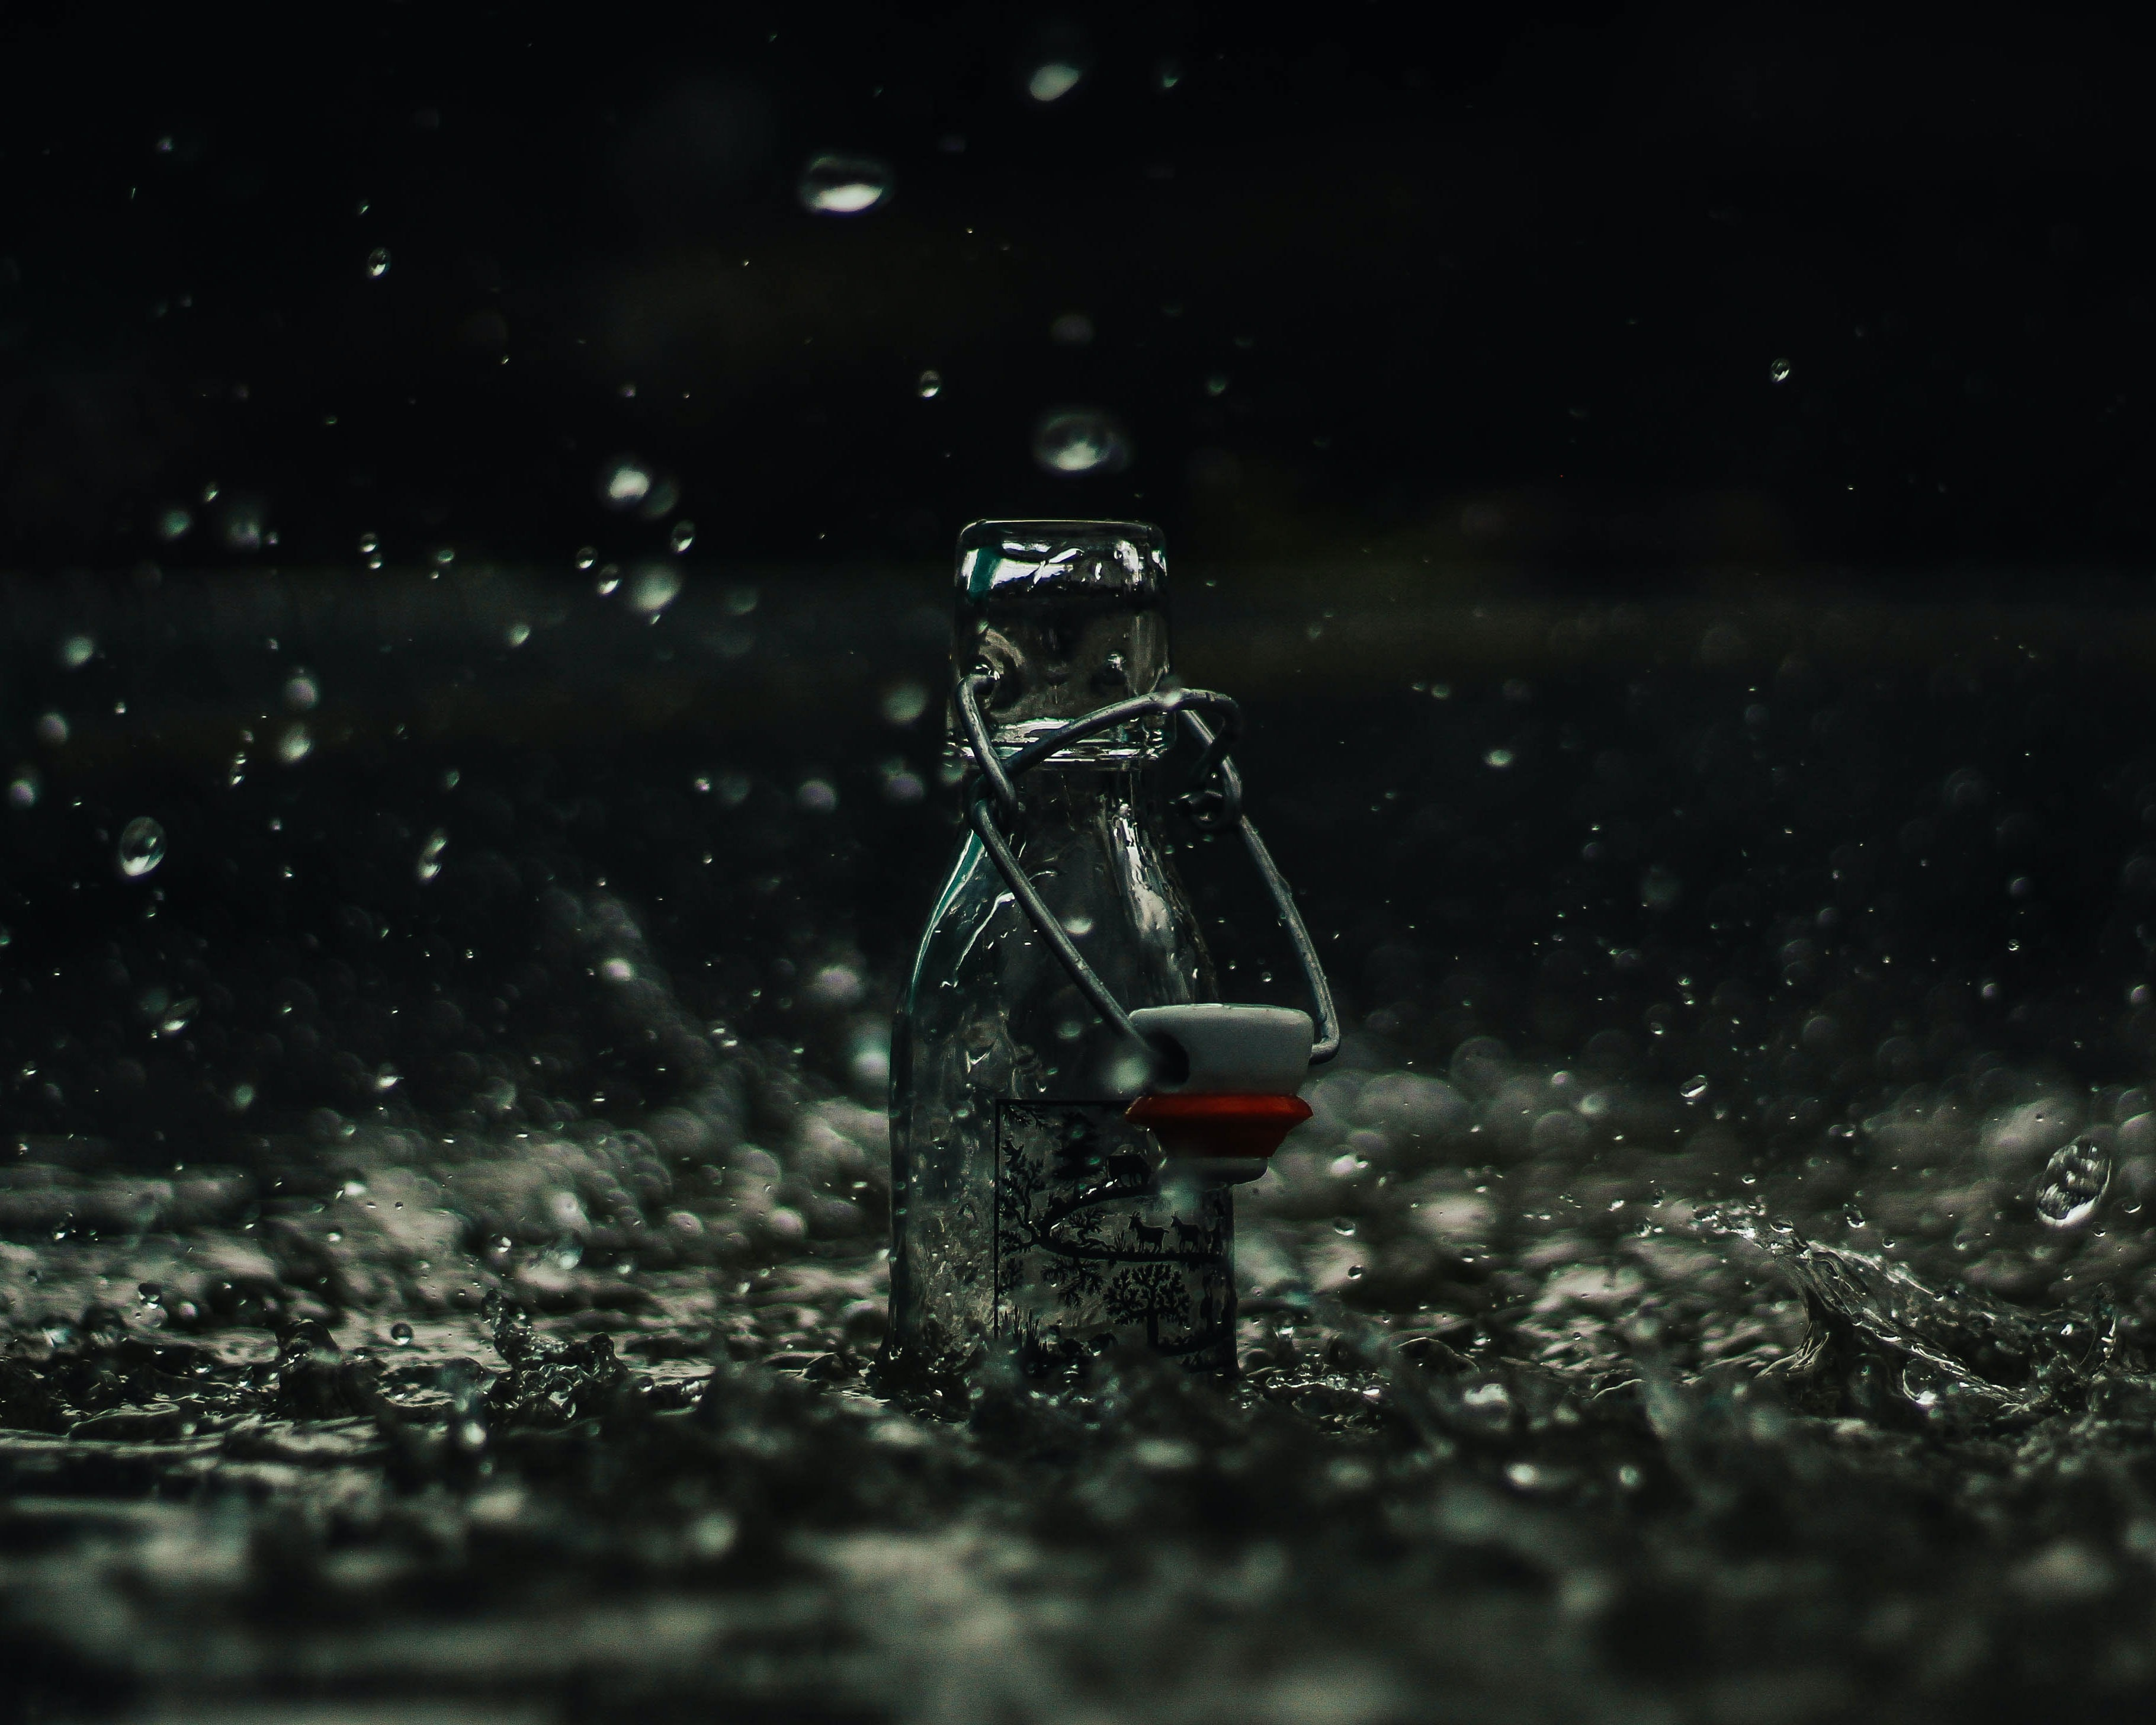 Glass bottle collects rain as water splashes around it